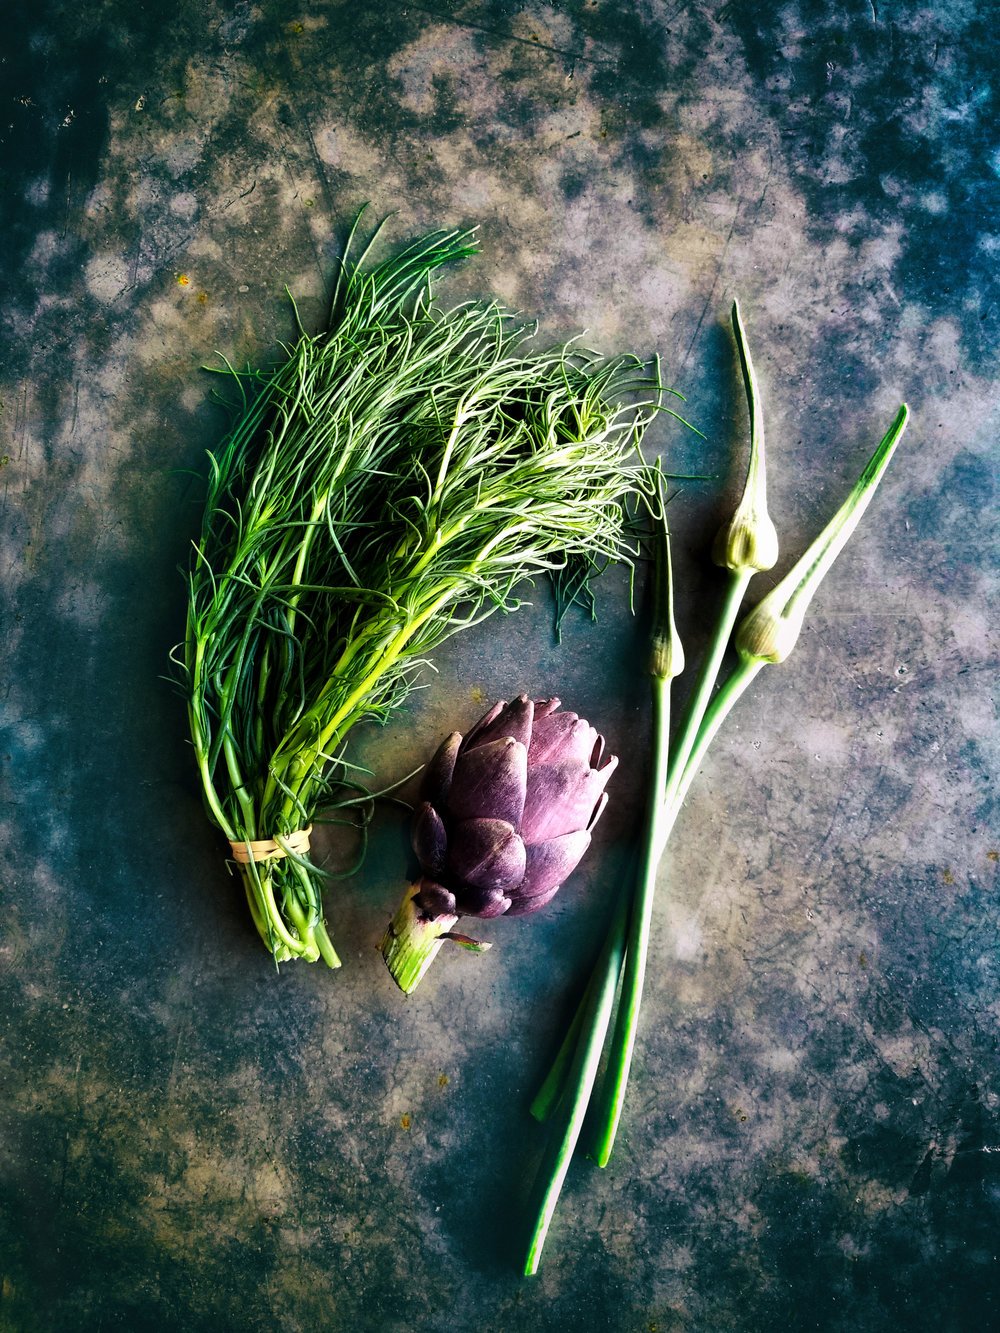 Italian Agretti, purple artichokes and scapes